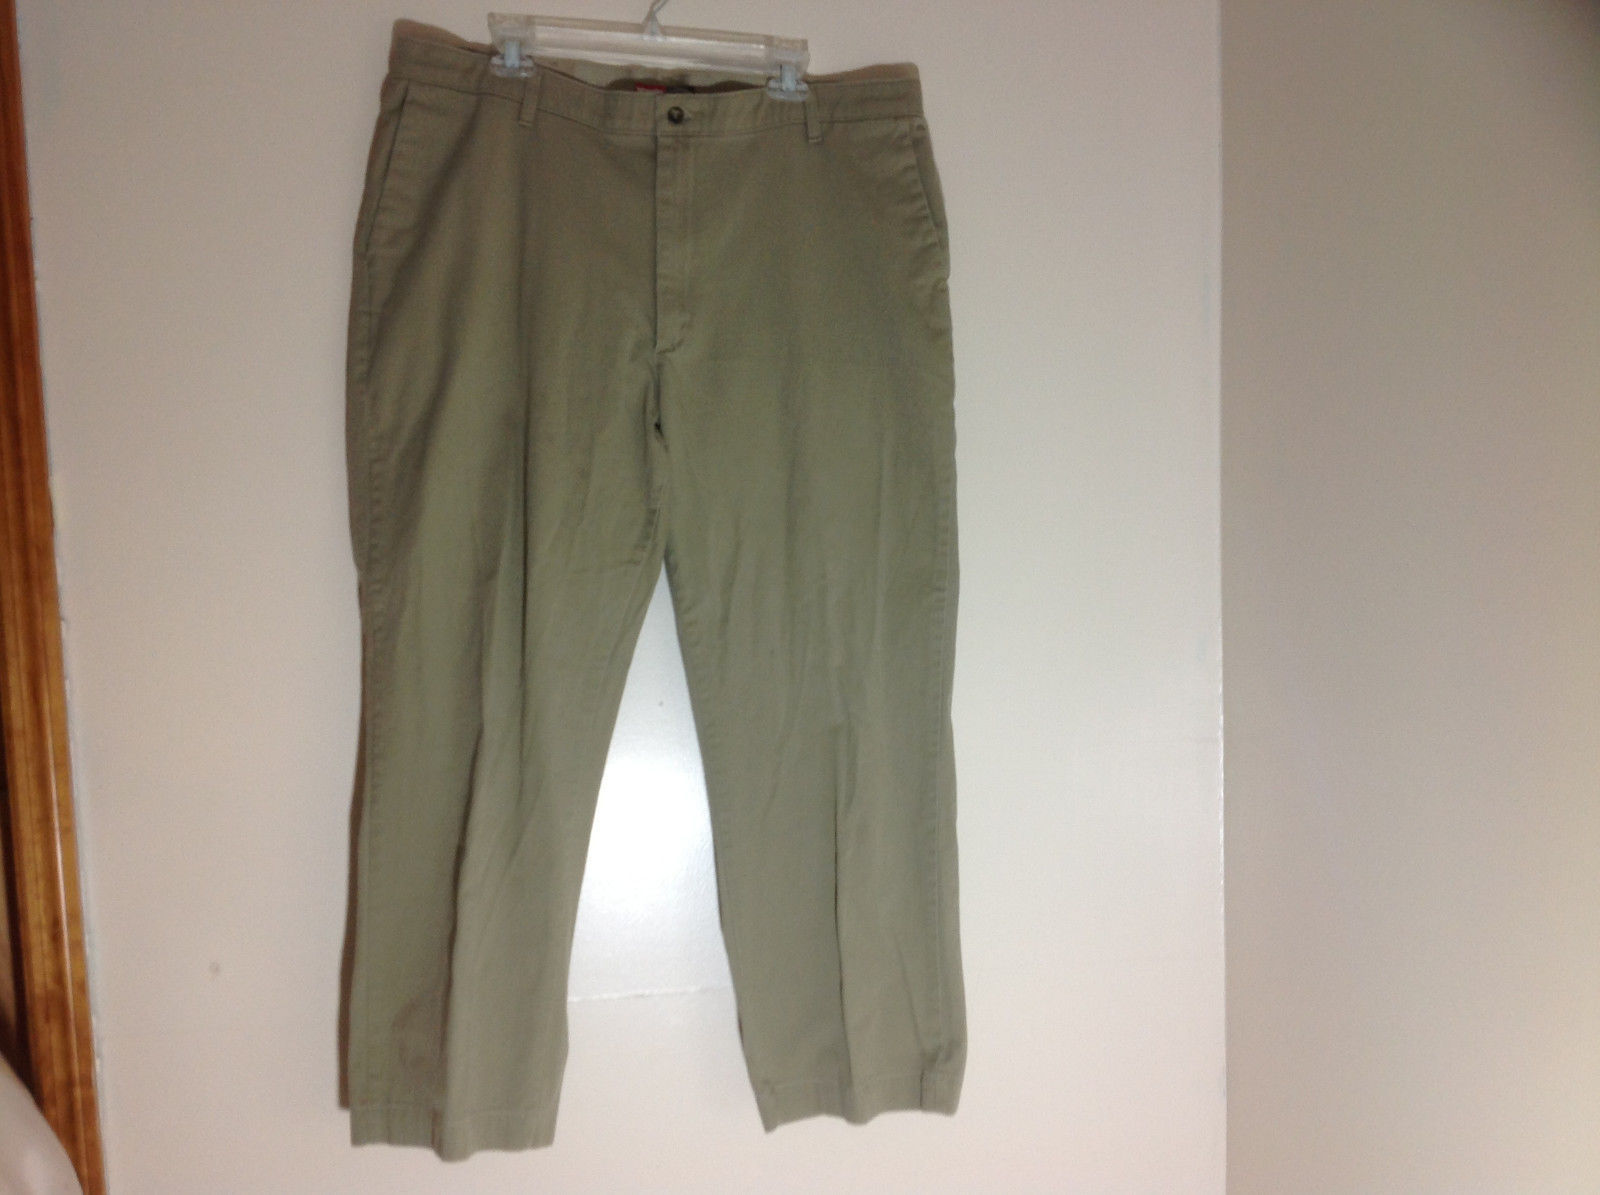 Wrangler Olive Green Work Pants Front and Back Pockets Size 40 x 32